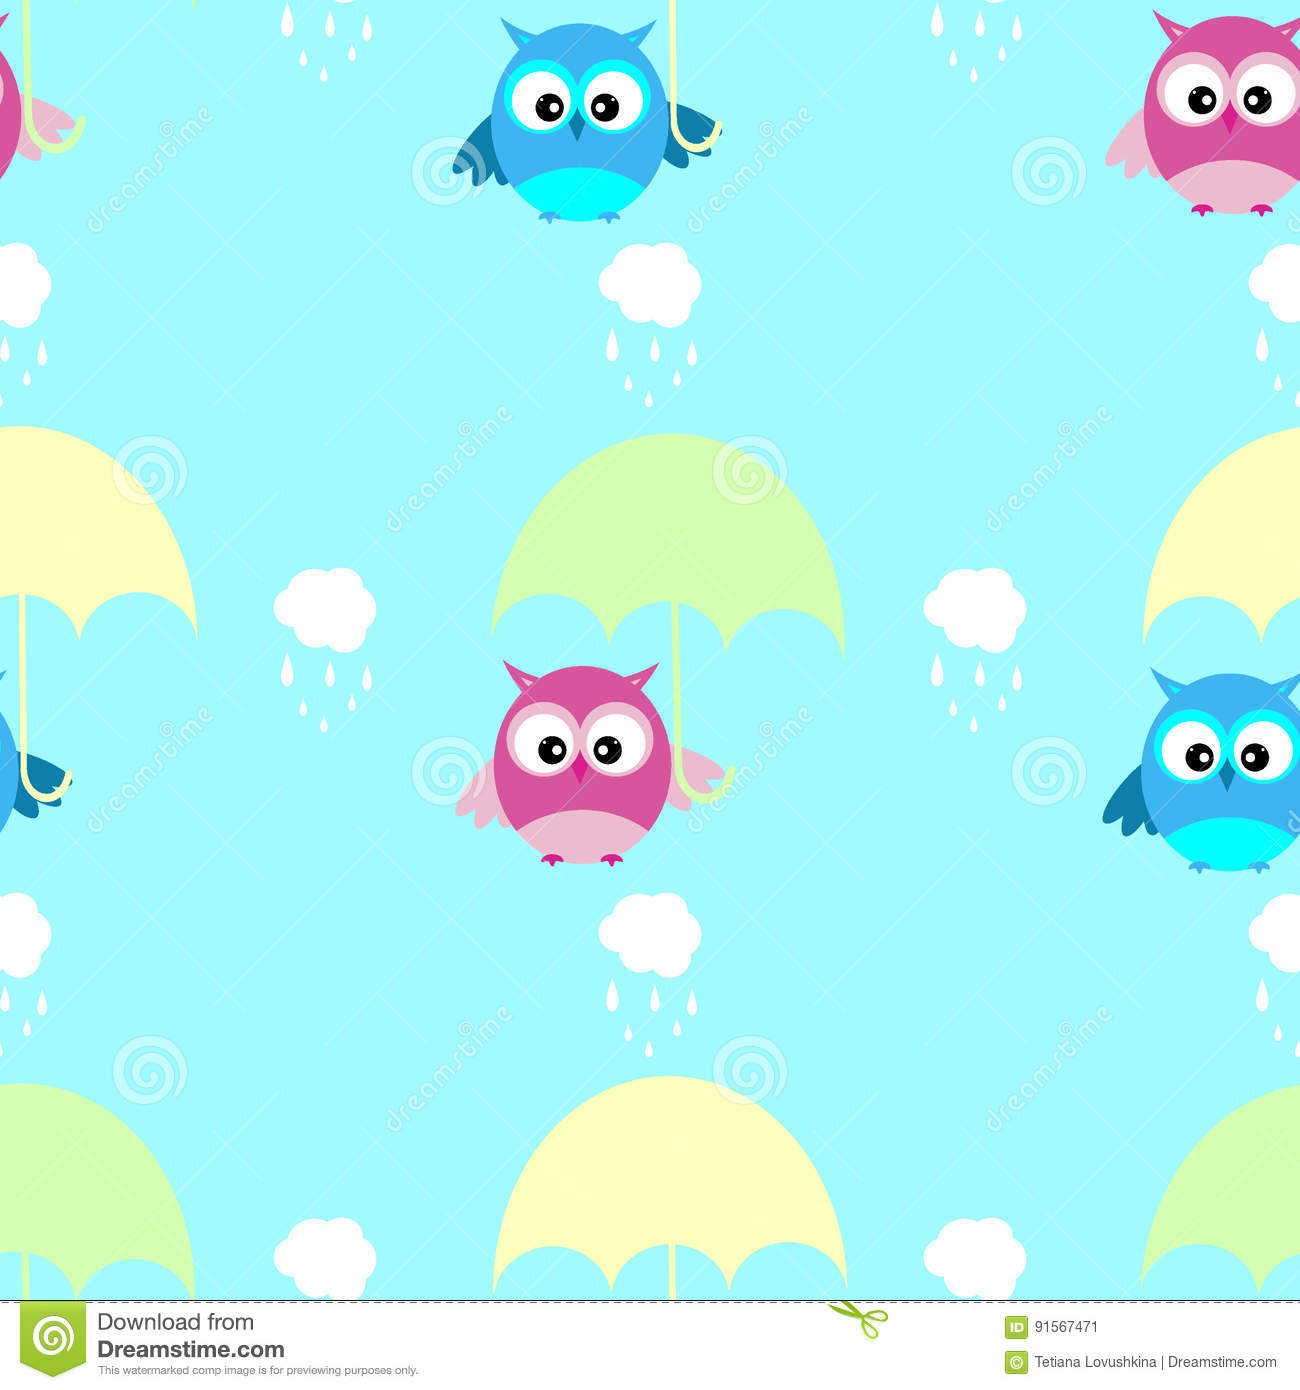 image about Umbrella Pattern Printable Free titled Practice inventory vector. Example of umbrell, lovable